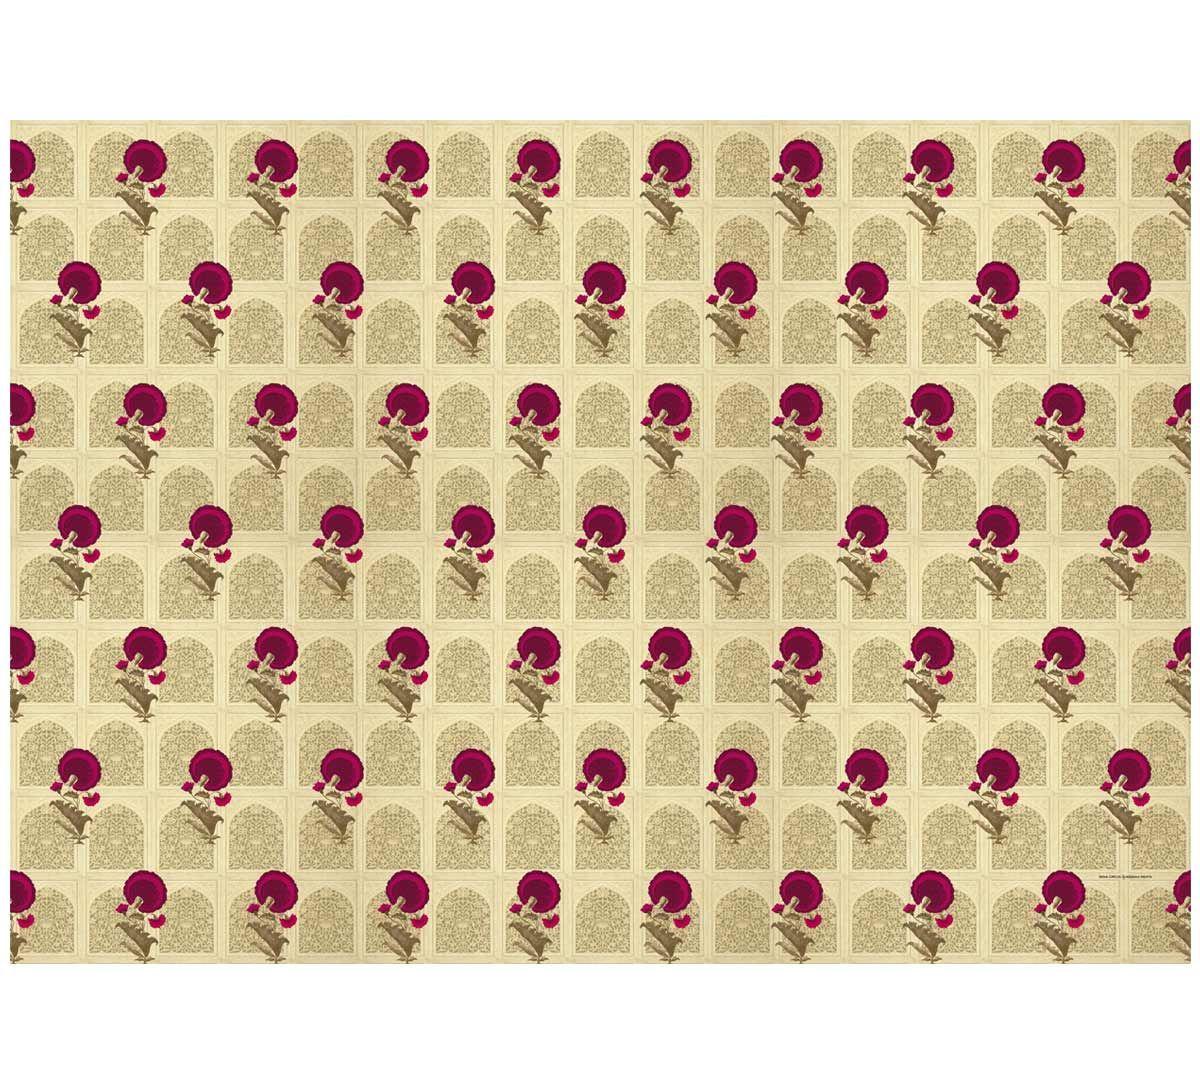 India Circus Flower Regalia Gift Wrapping Paper